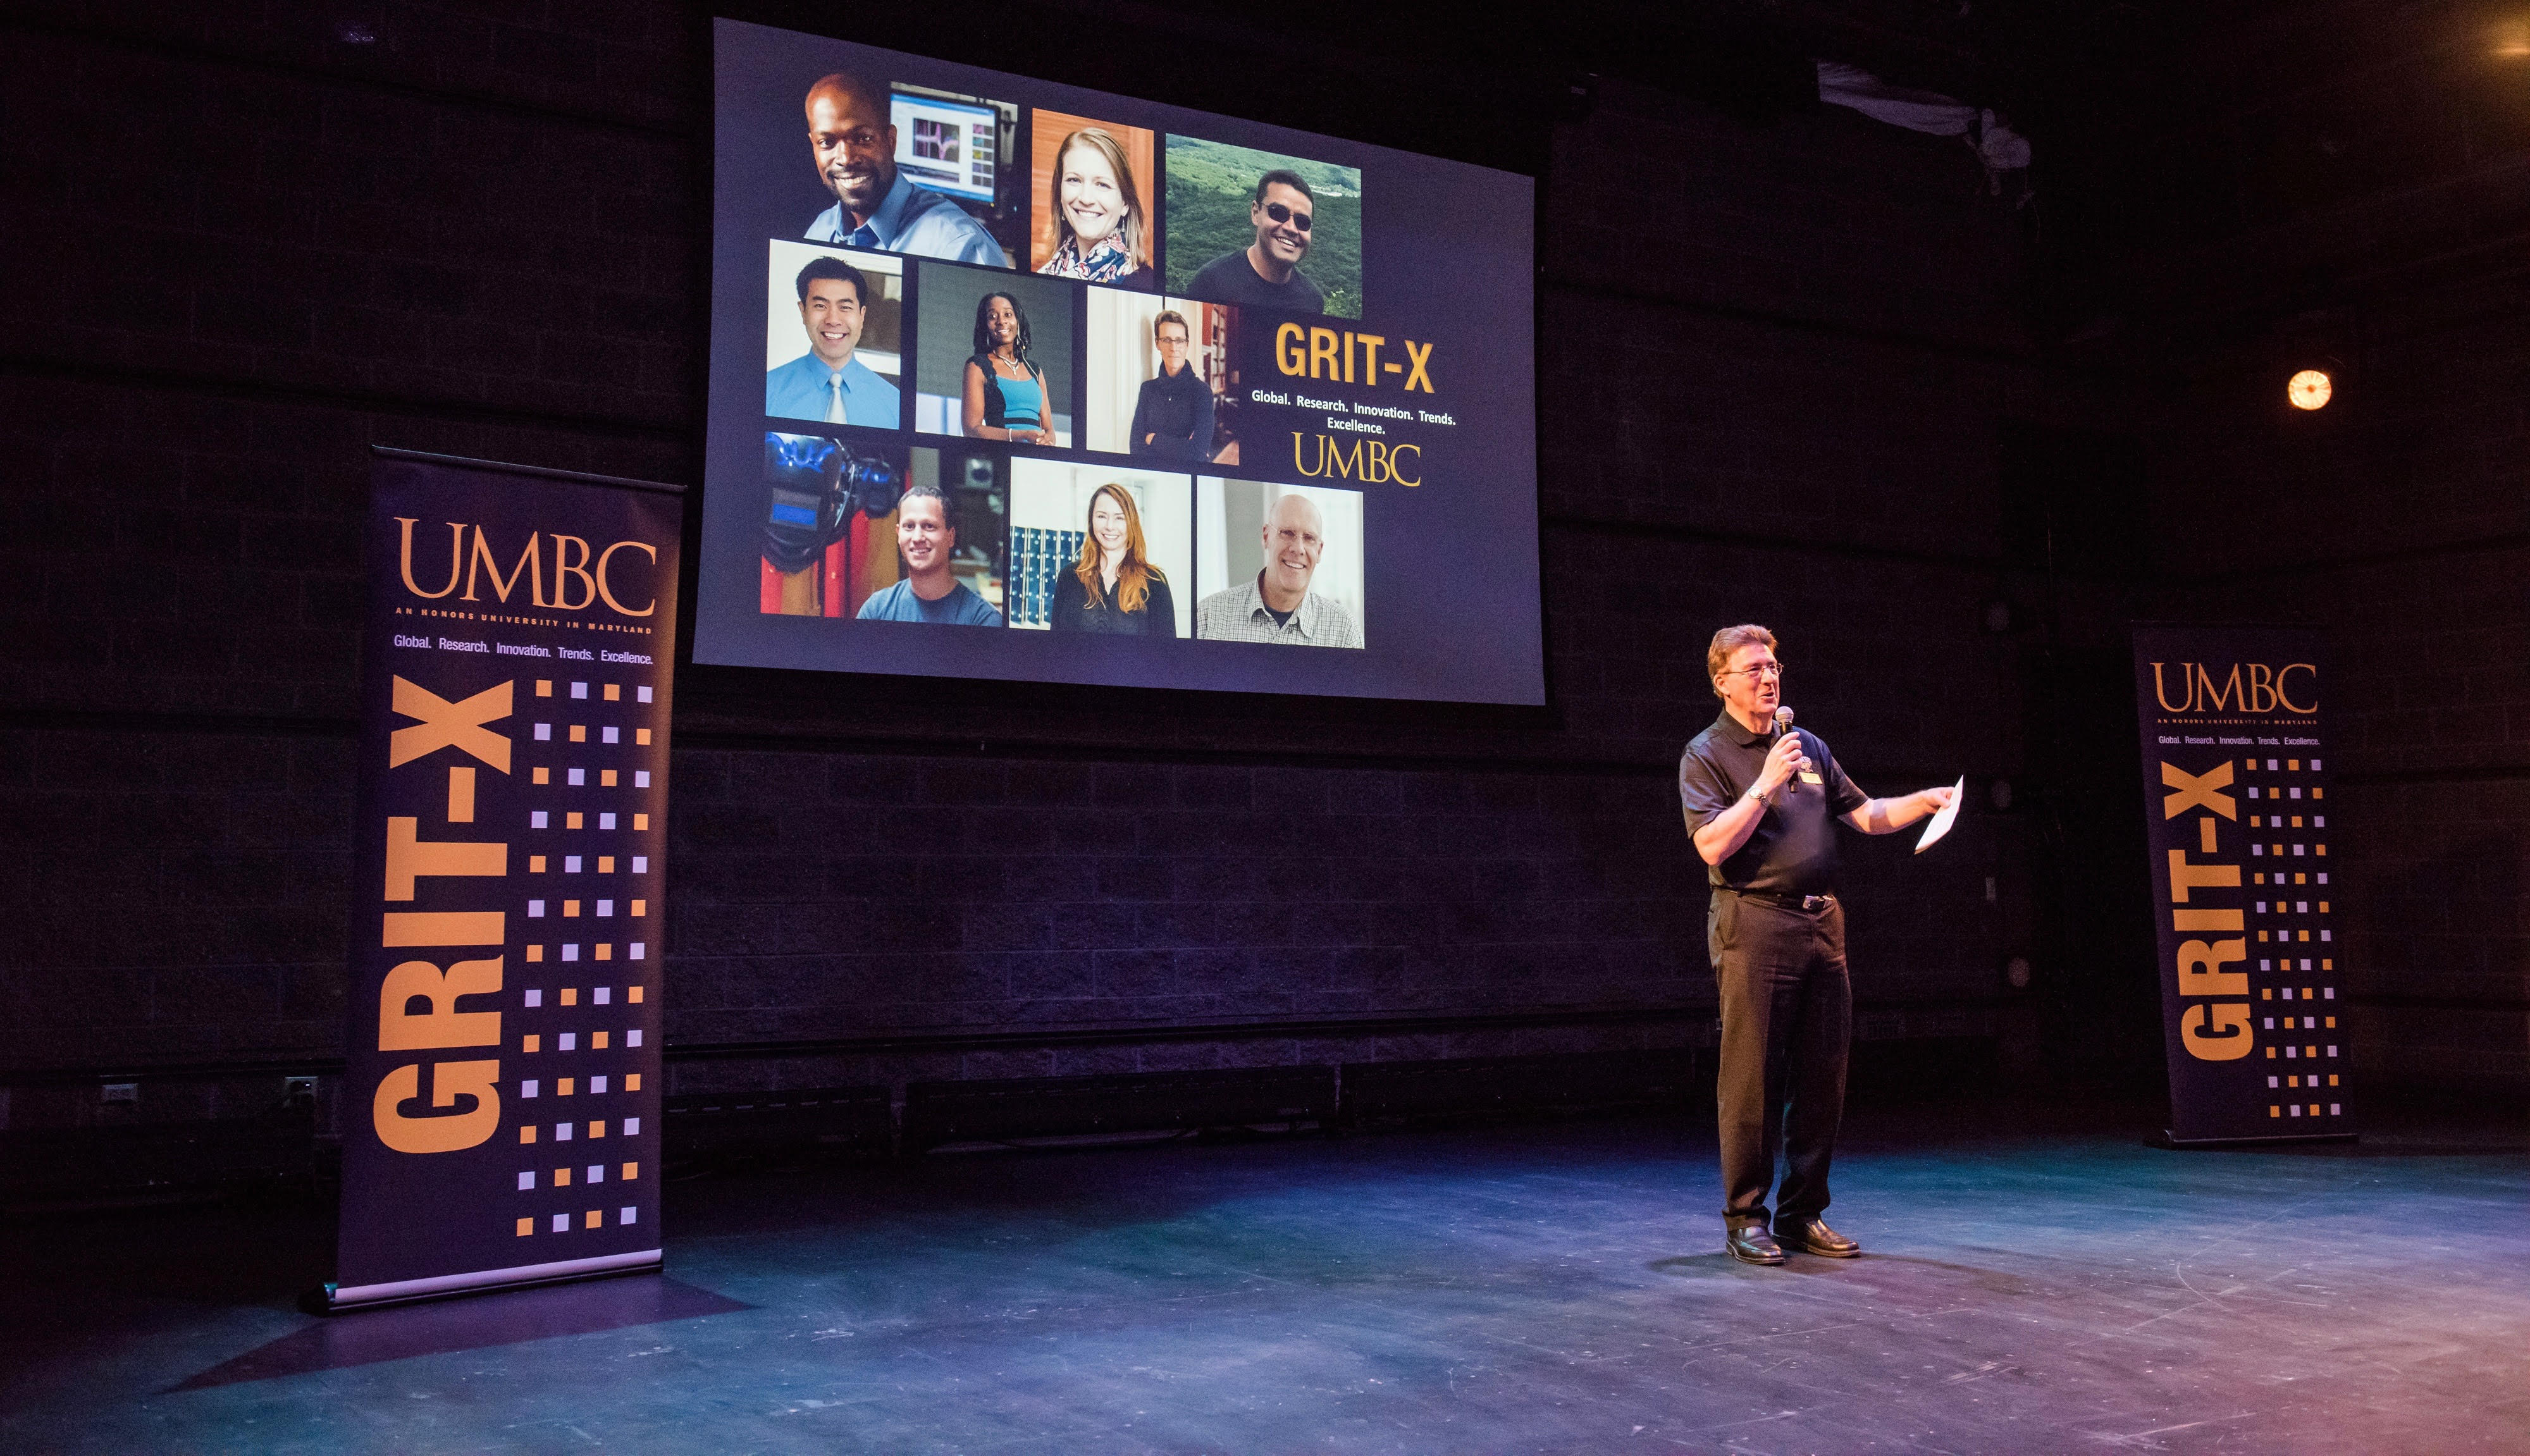 """GRIT-X talks showcase experiences of outstanding faculty and alumni """"from outer space to inner space"""""""